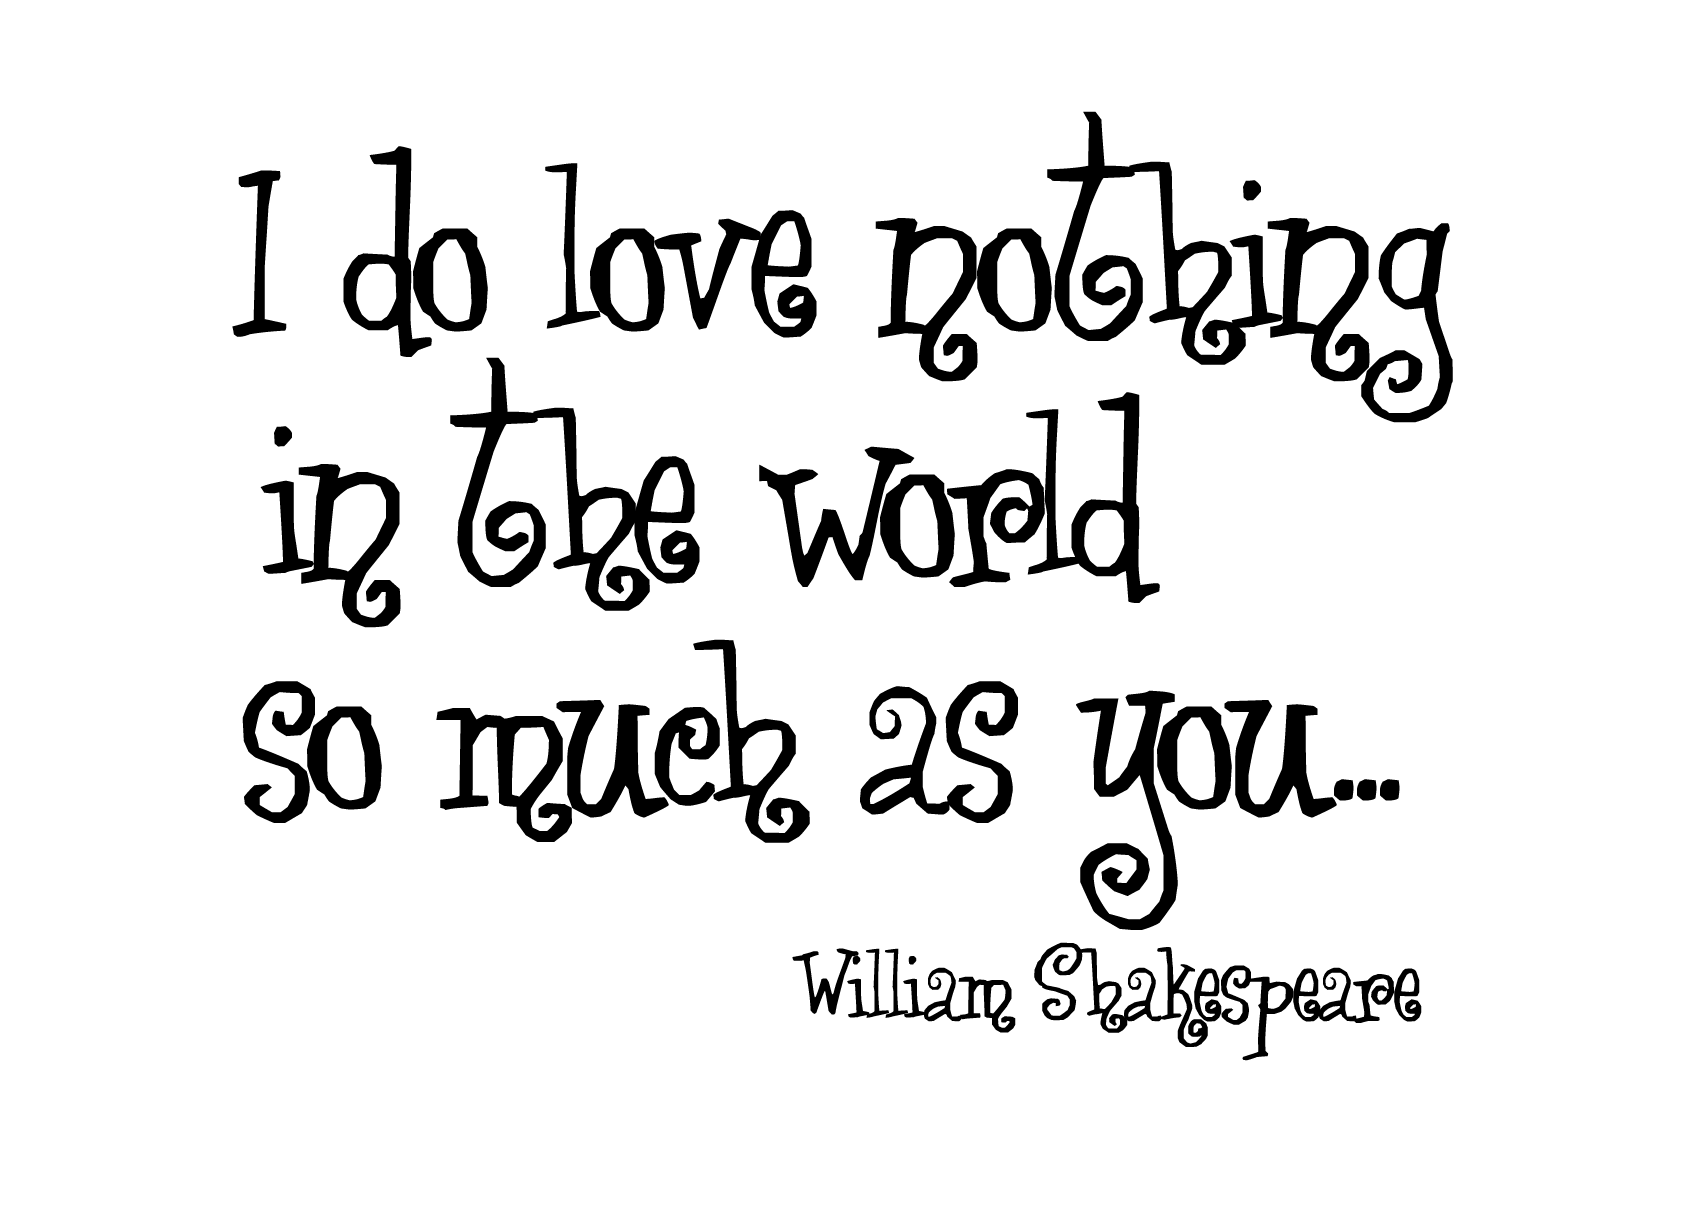 Quotes Shakespeare Love Quotes Pictures Images Free 2013 Shakespeare Love Quotes